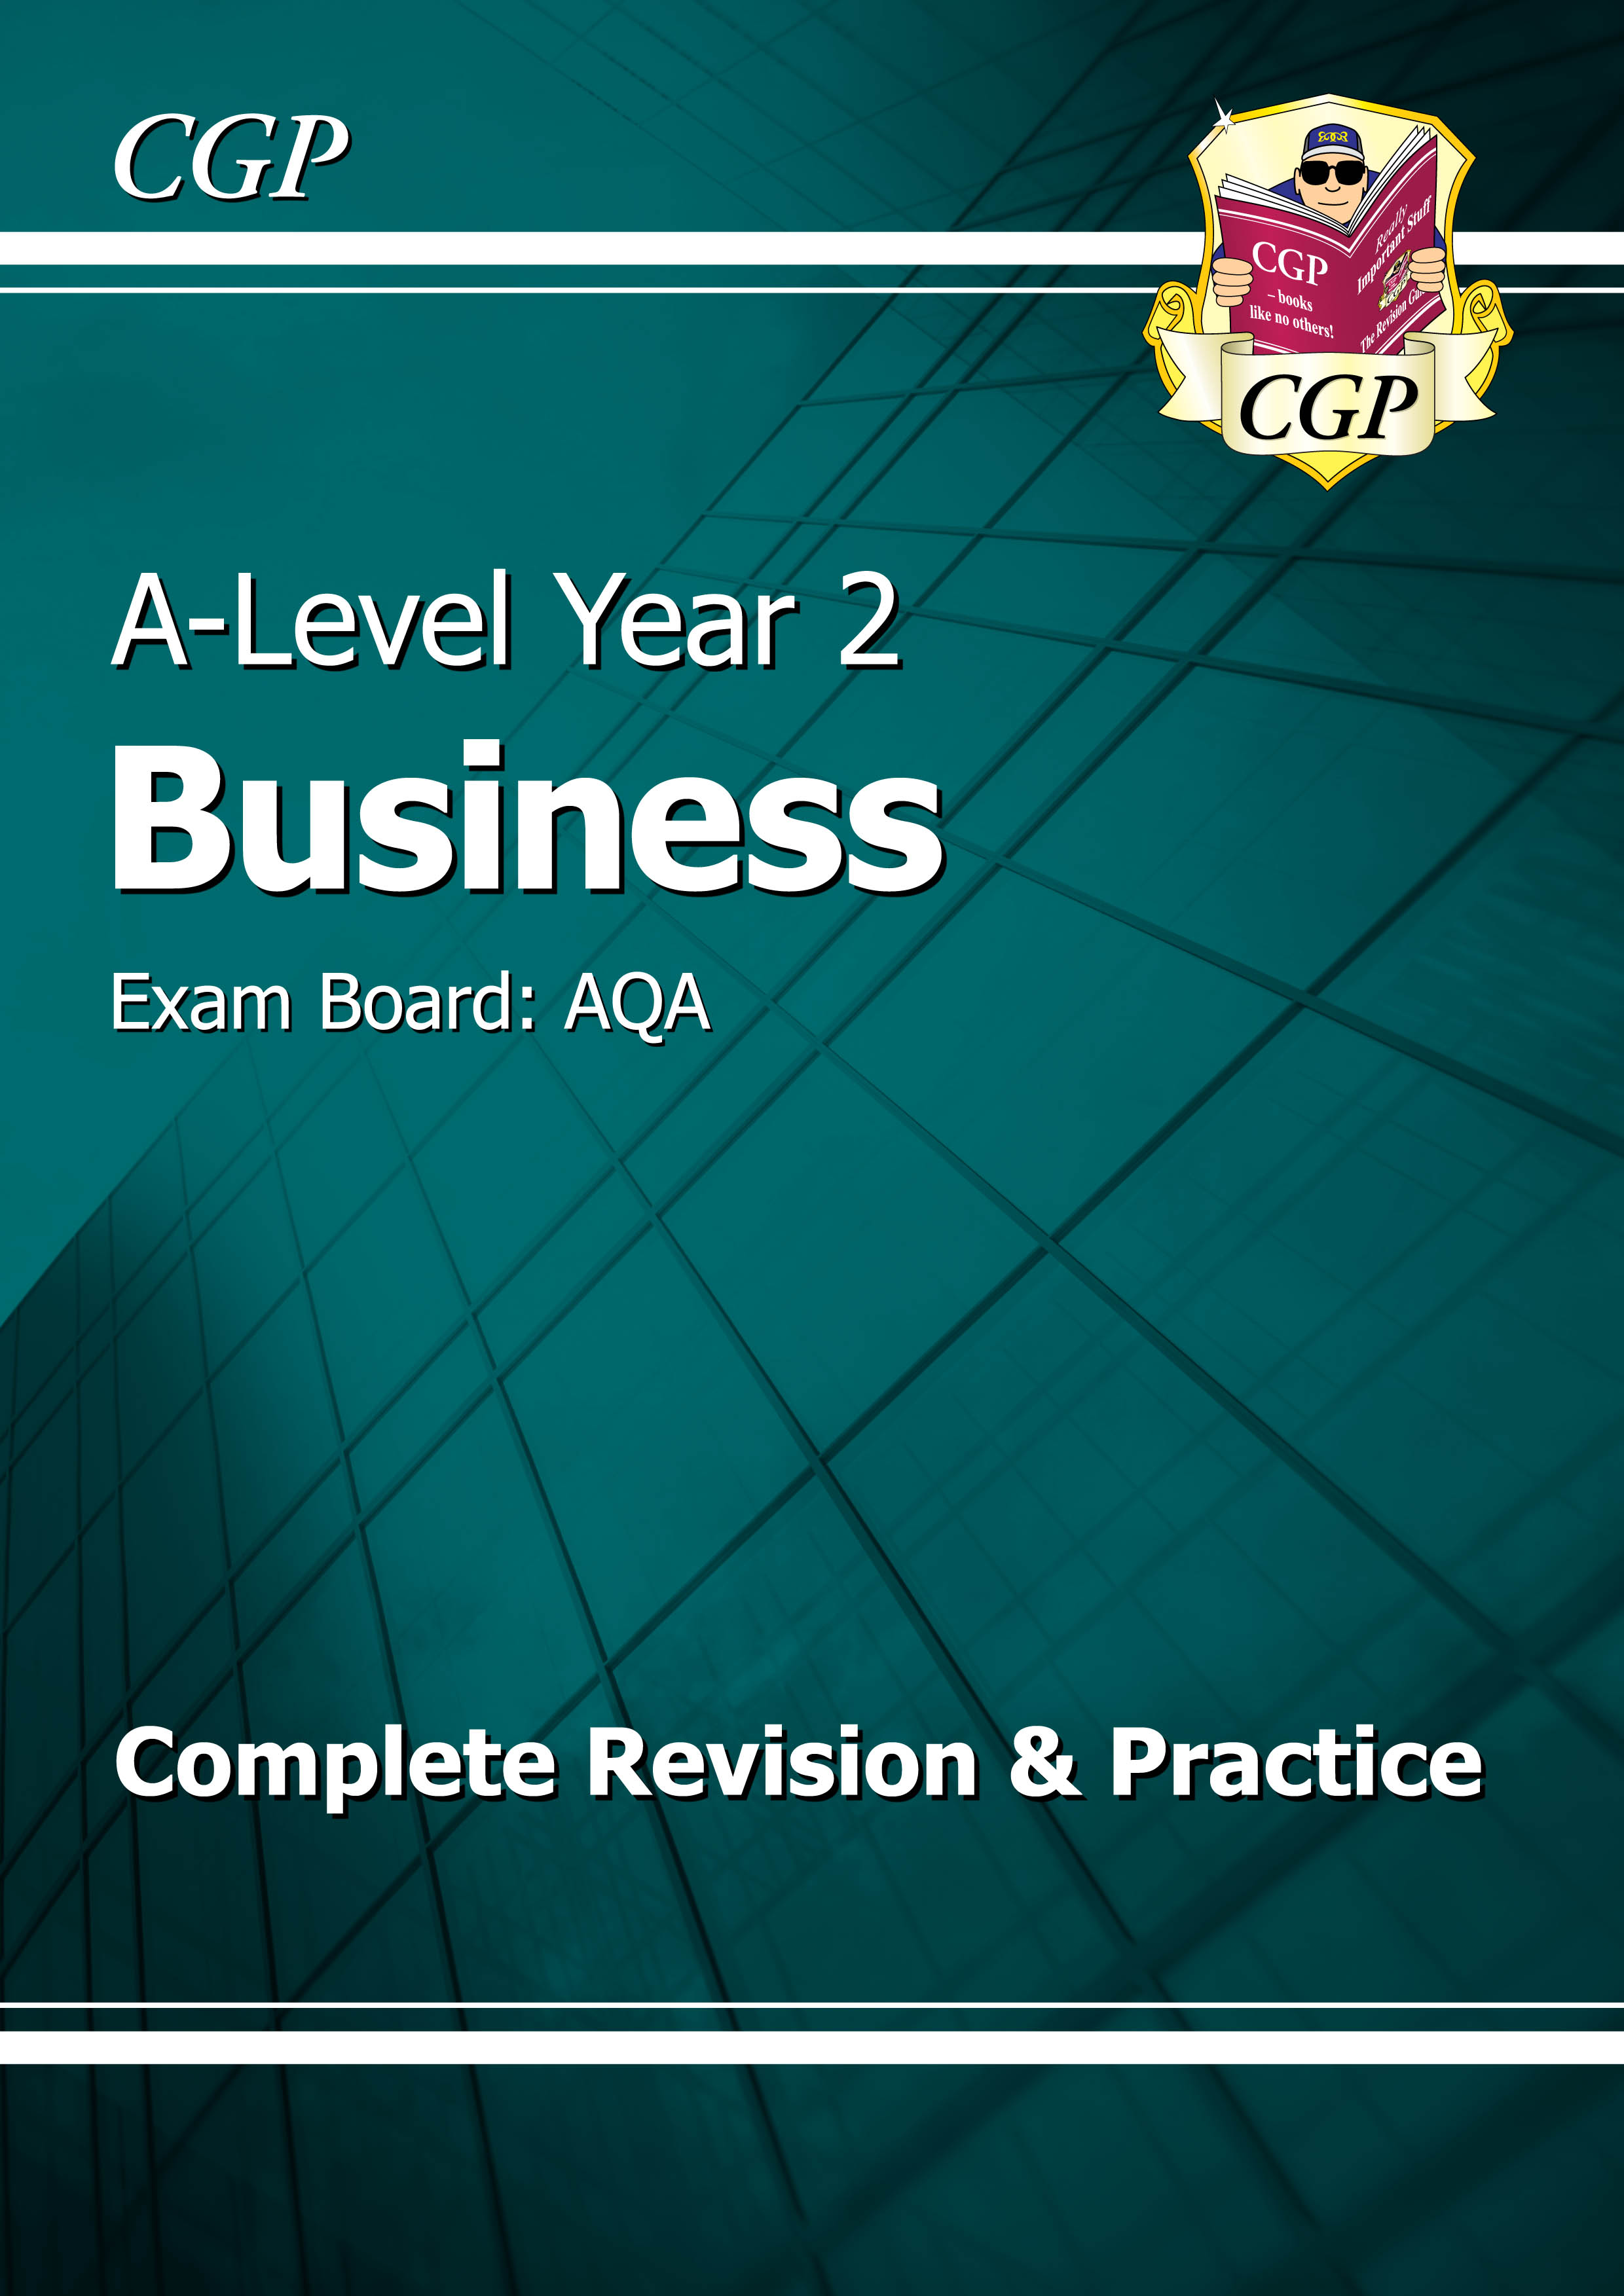 BUAR63DK - A-Level Business: AQA Year 2 Complete Revision & Practice